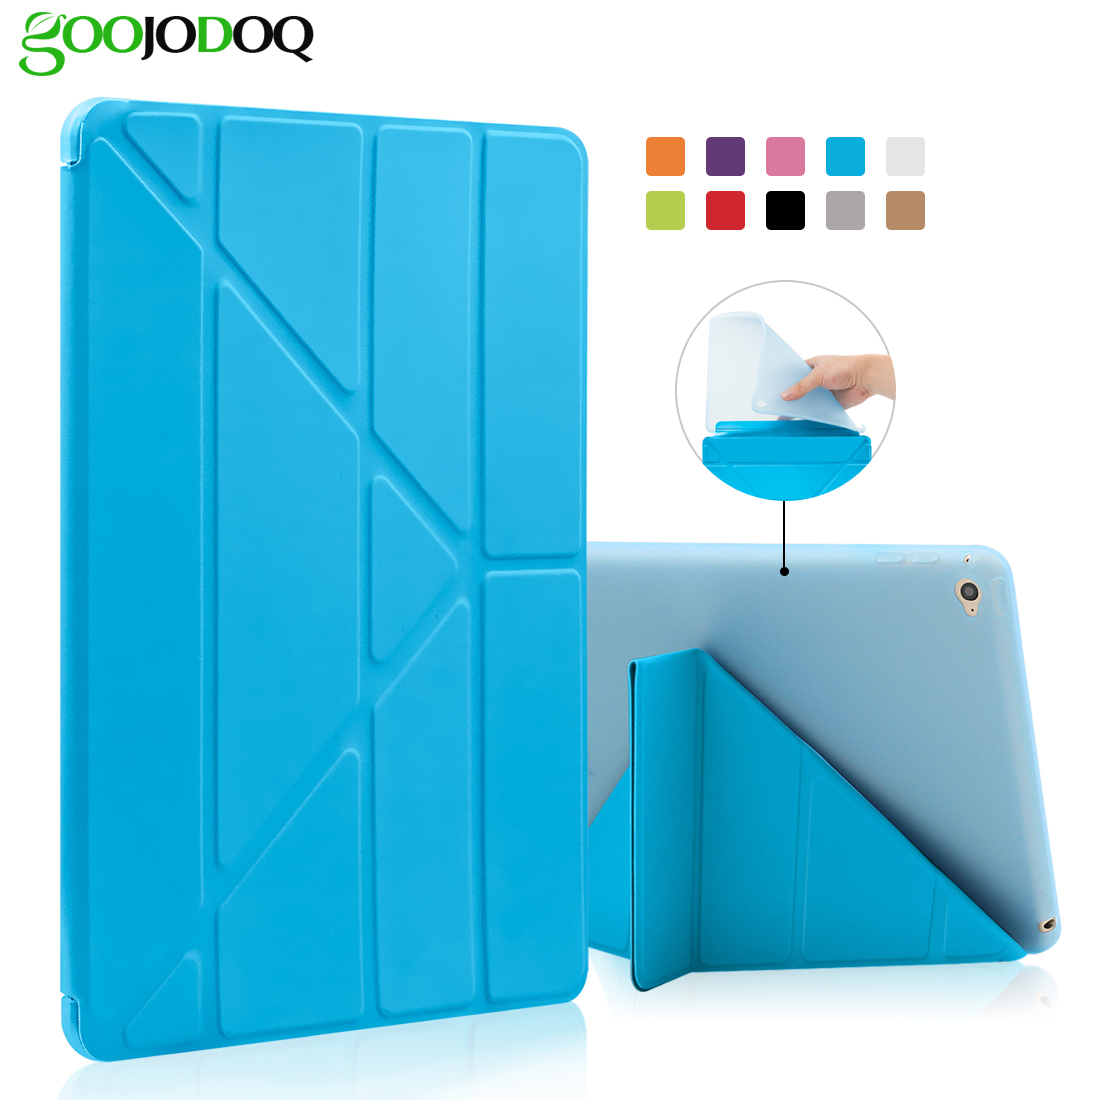 For iPad Pro 9.7 Case,Smart Cover with Silicone TPU Soft Back Multi-Fold Stand Tablets Case for iPad Pro 9.7 inch 2016 Coque candy color soft jelly silicone rubber tpu case for ipad pro 9 7 tpu case skin shell protective back cover for ipad pro 9 7 inch